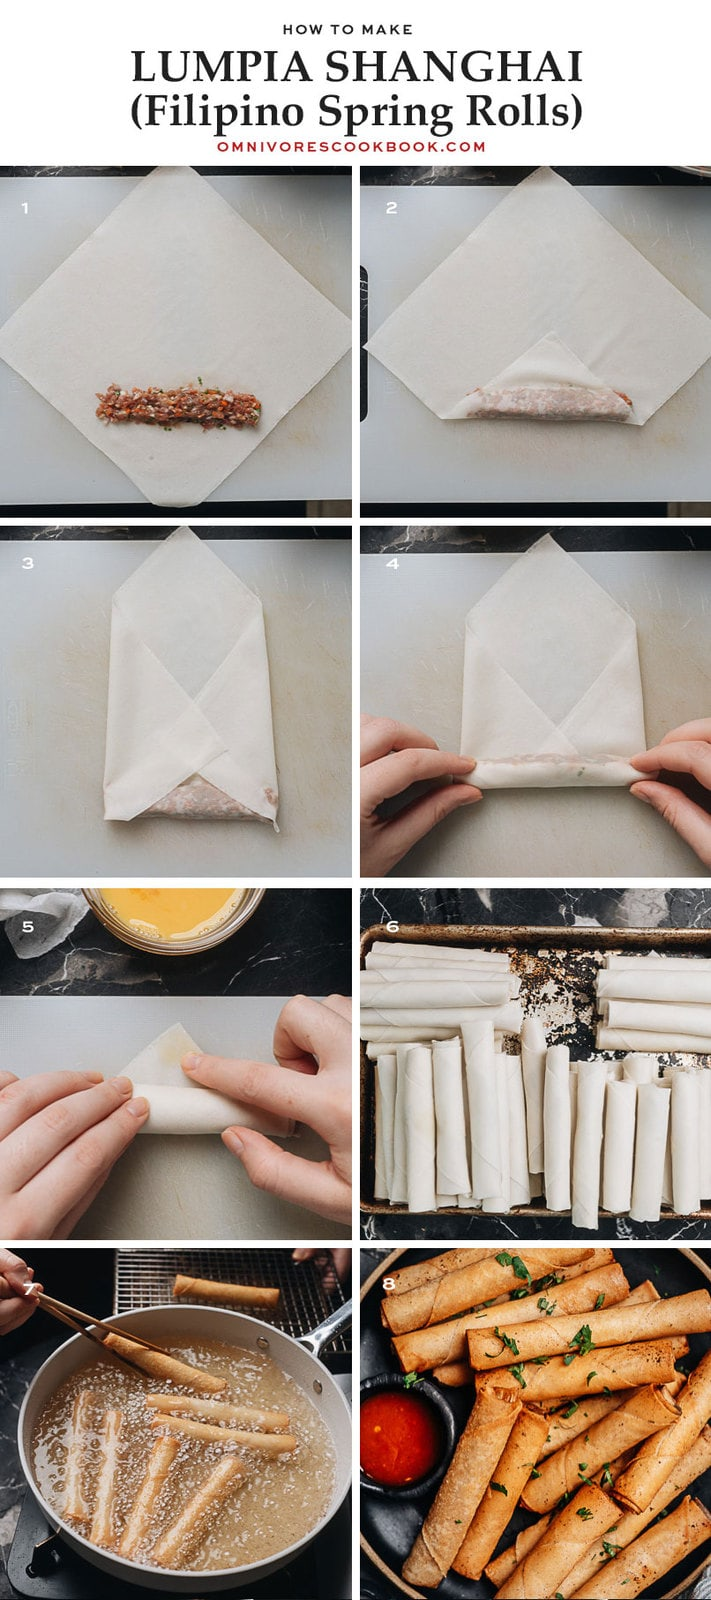 How to make Lumpia Shanghai step-by-step